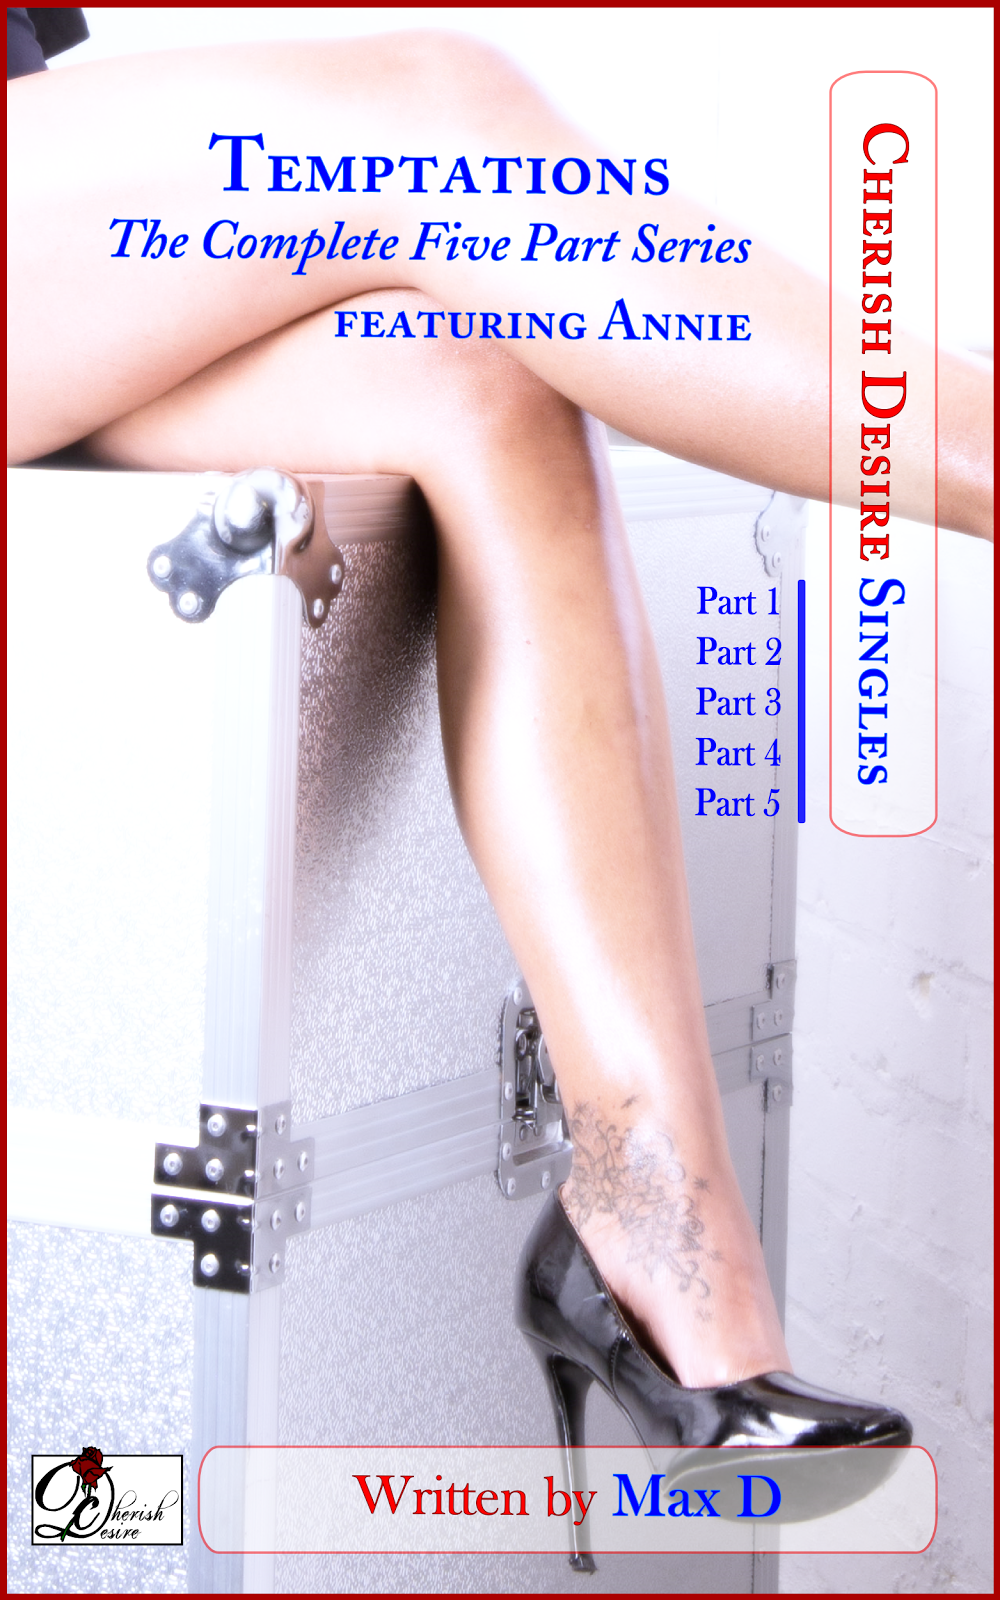 Cherish Desire Singles: Temptations (The Complete Five Part Series) featuring Annie, Max D, erotica